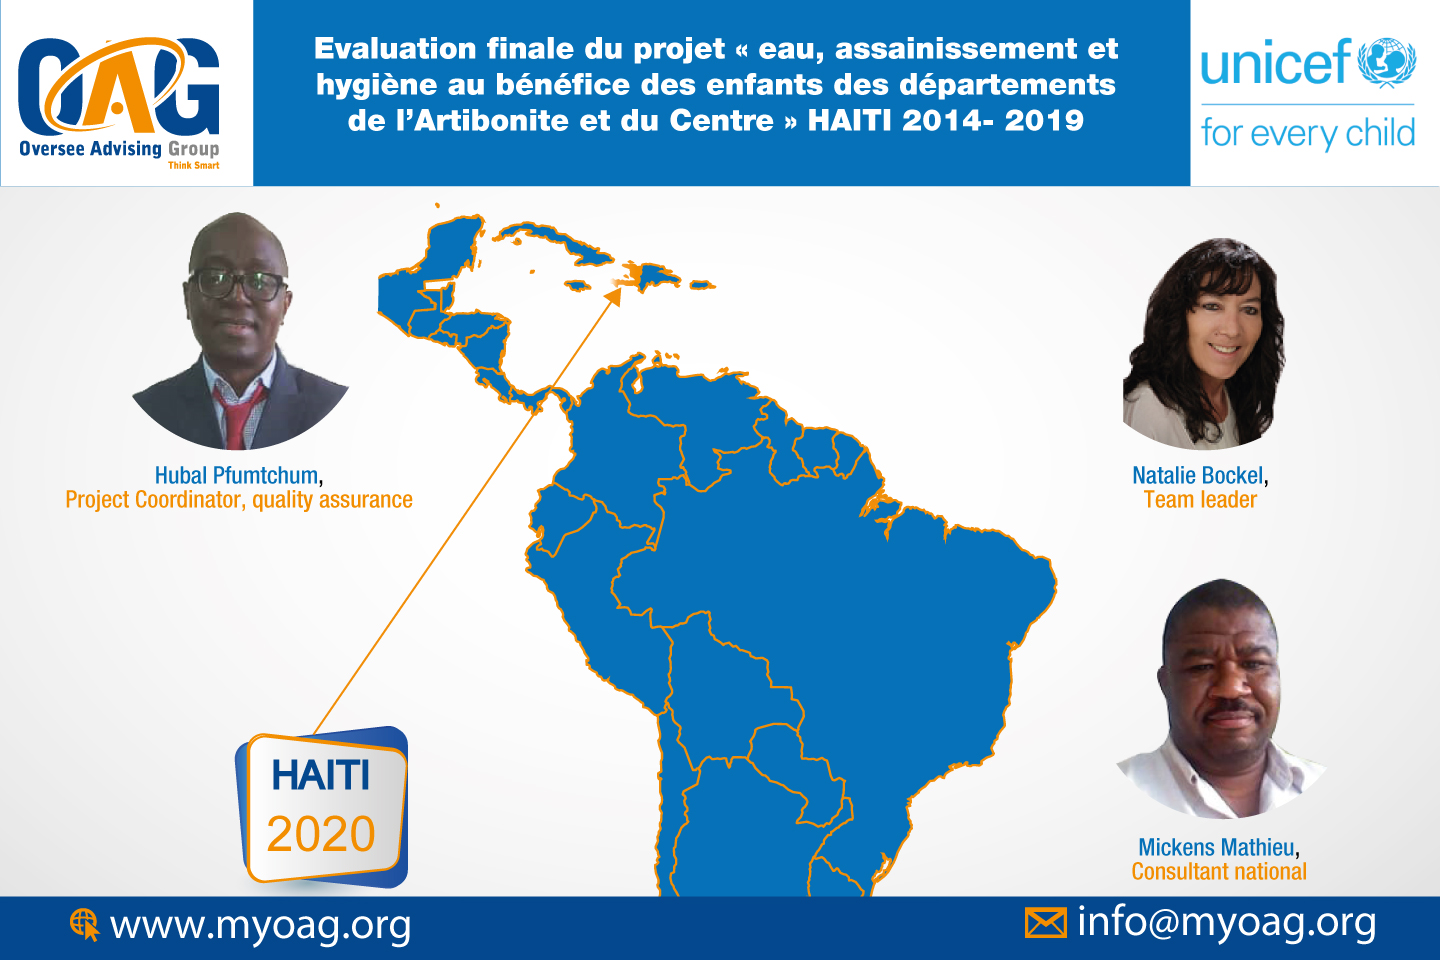 OAG poursuit l'évaluation du projet Wash Unicef en Haiti